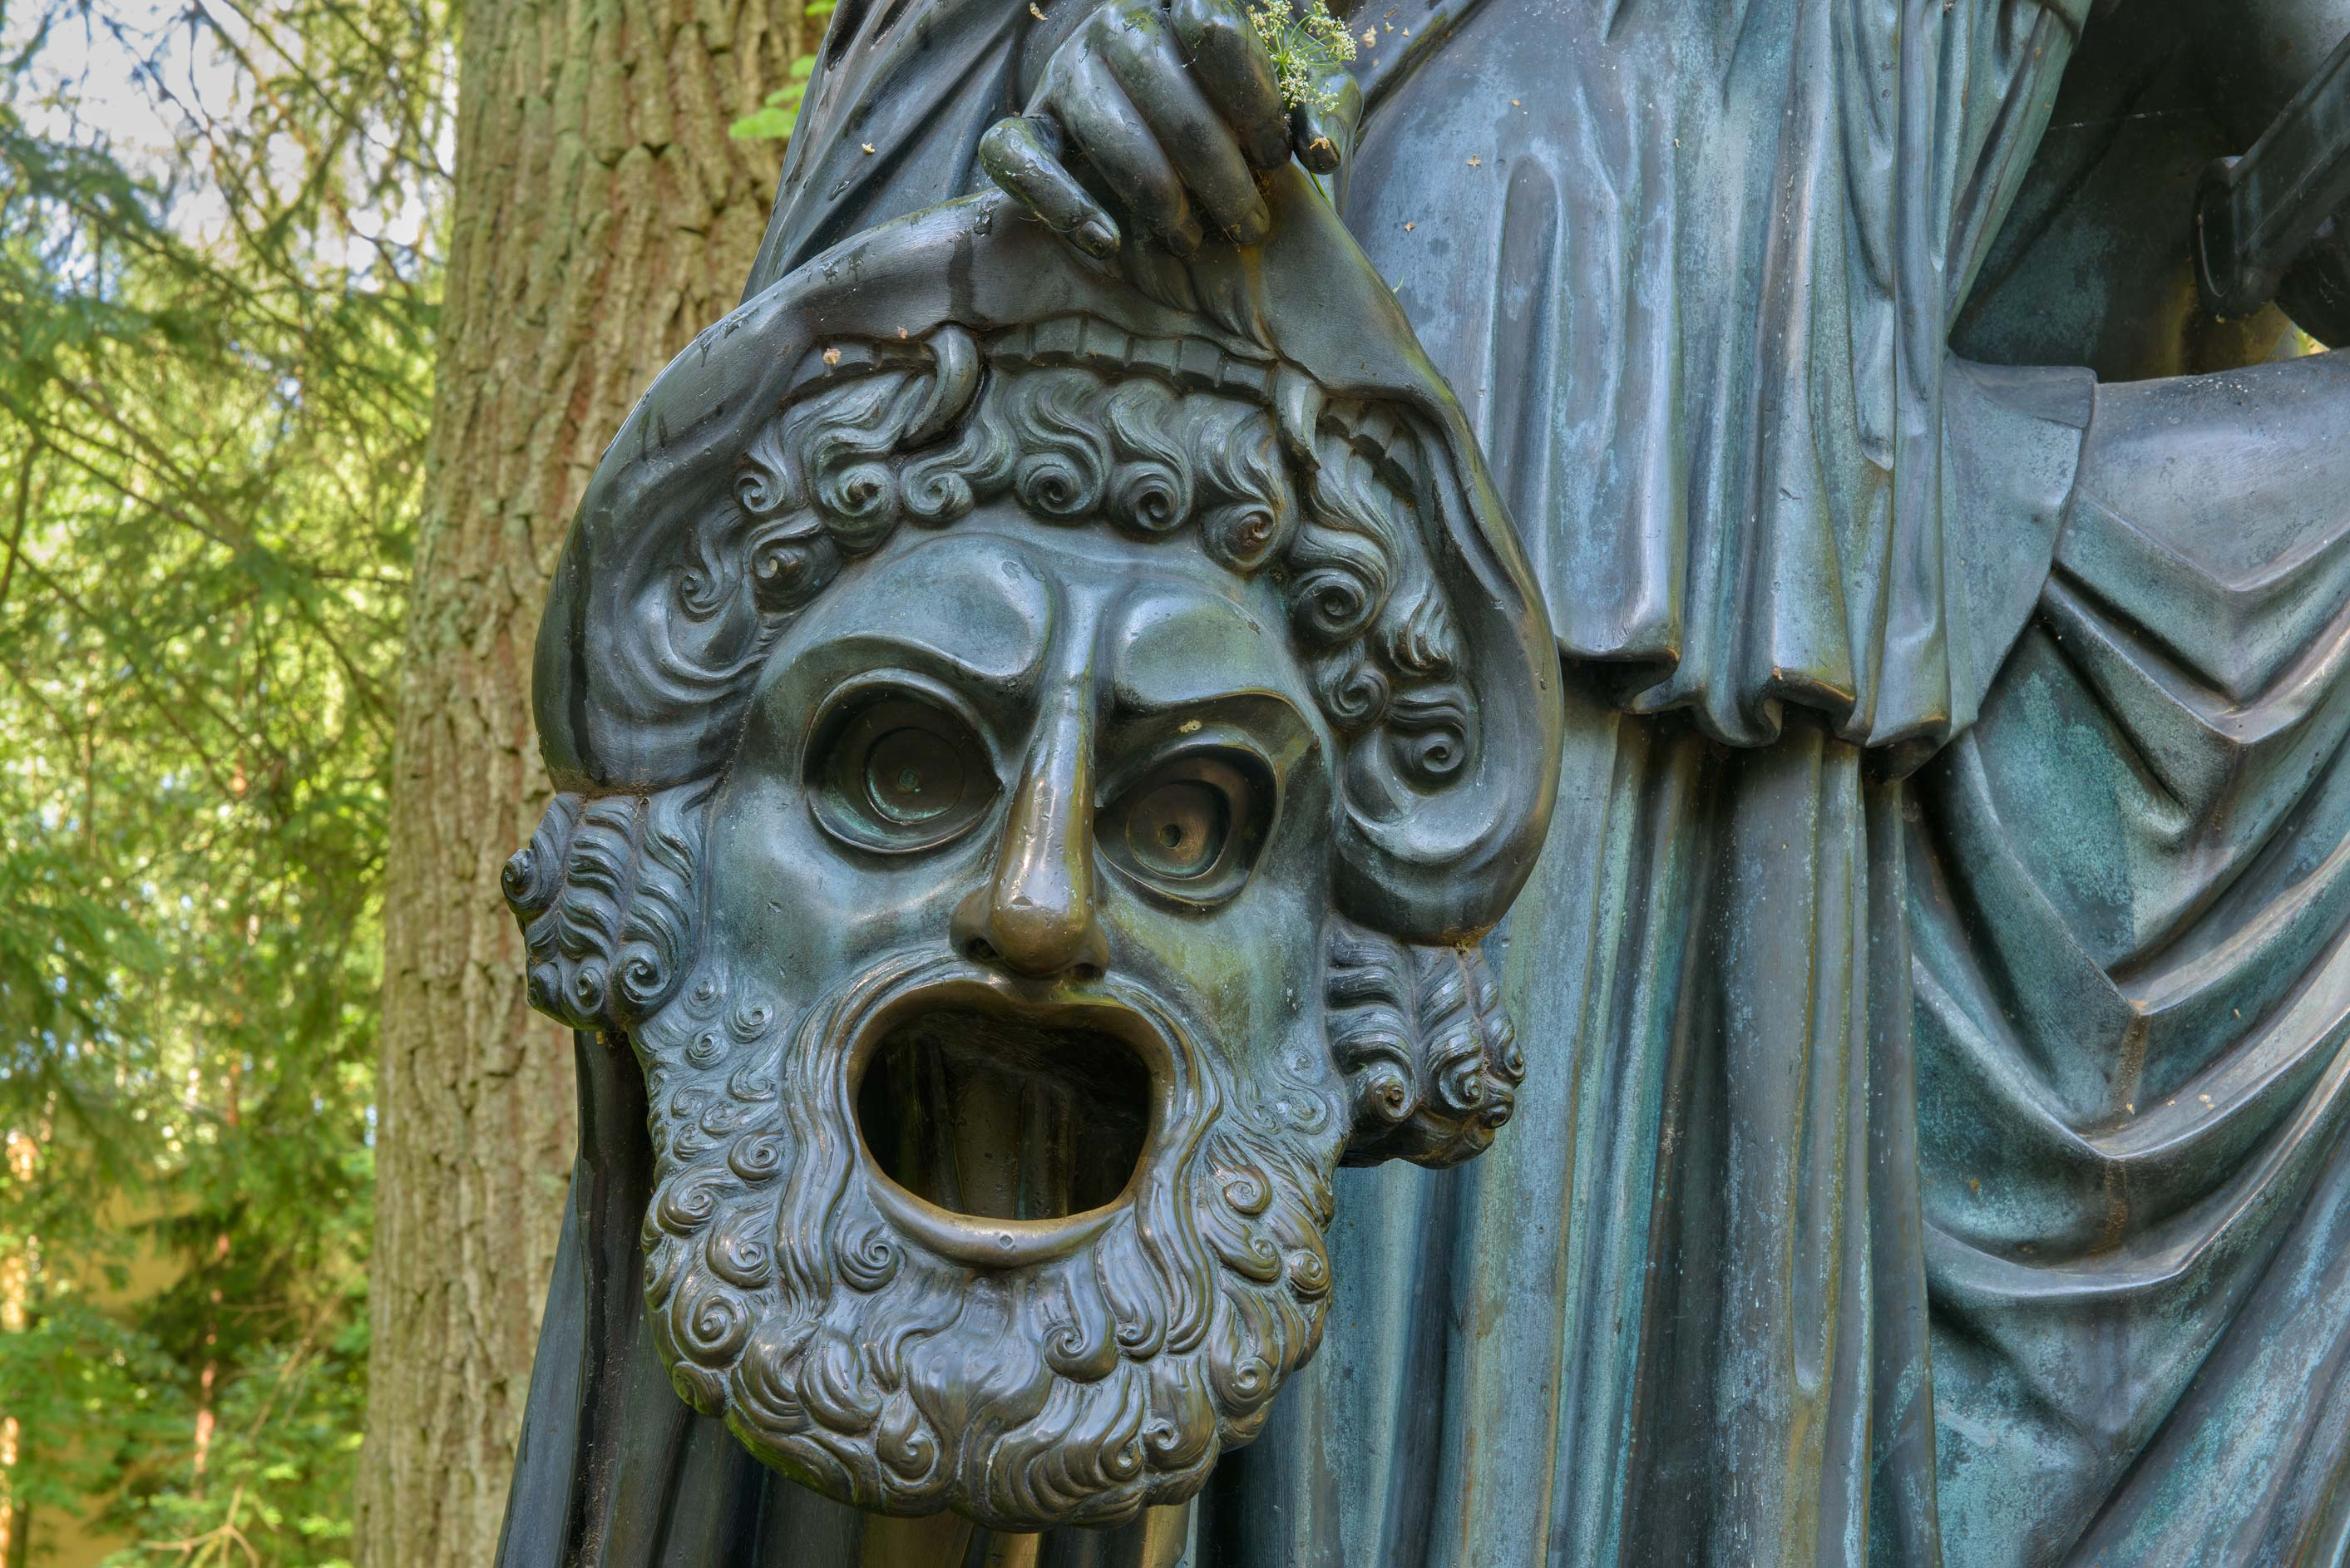 Mask of Sculpture of a Greek muse Melpomene on...a suburb of St.Petersburg, Russia